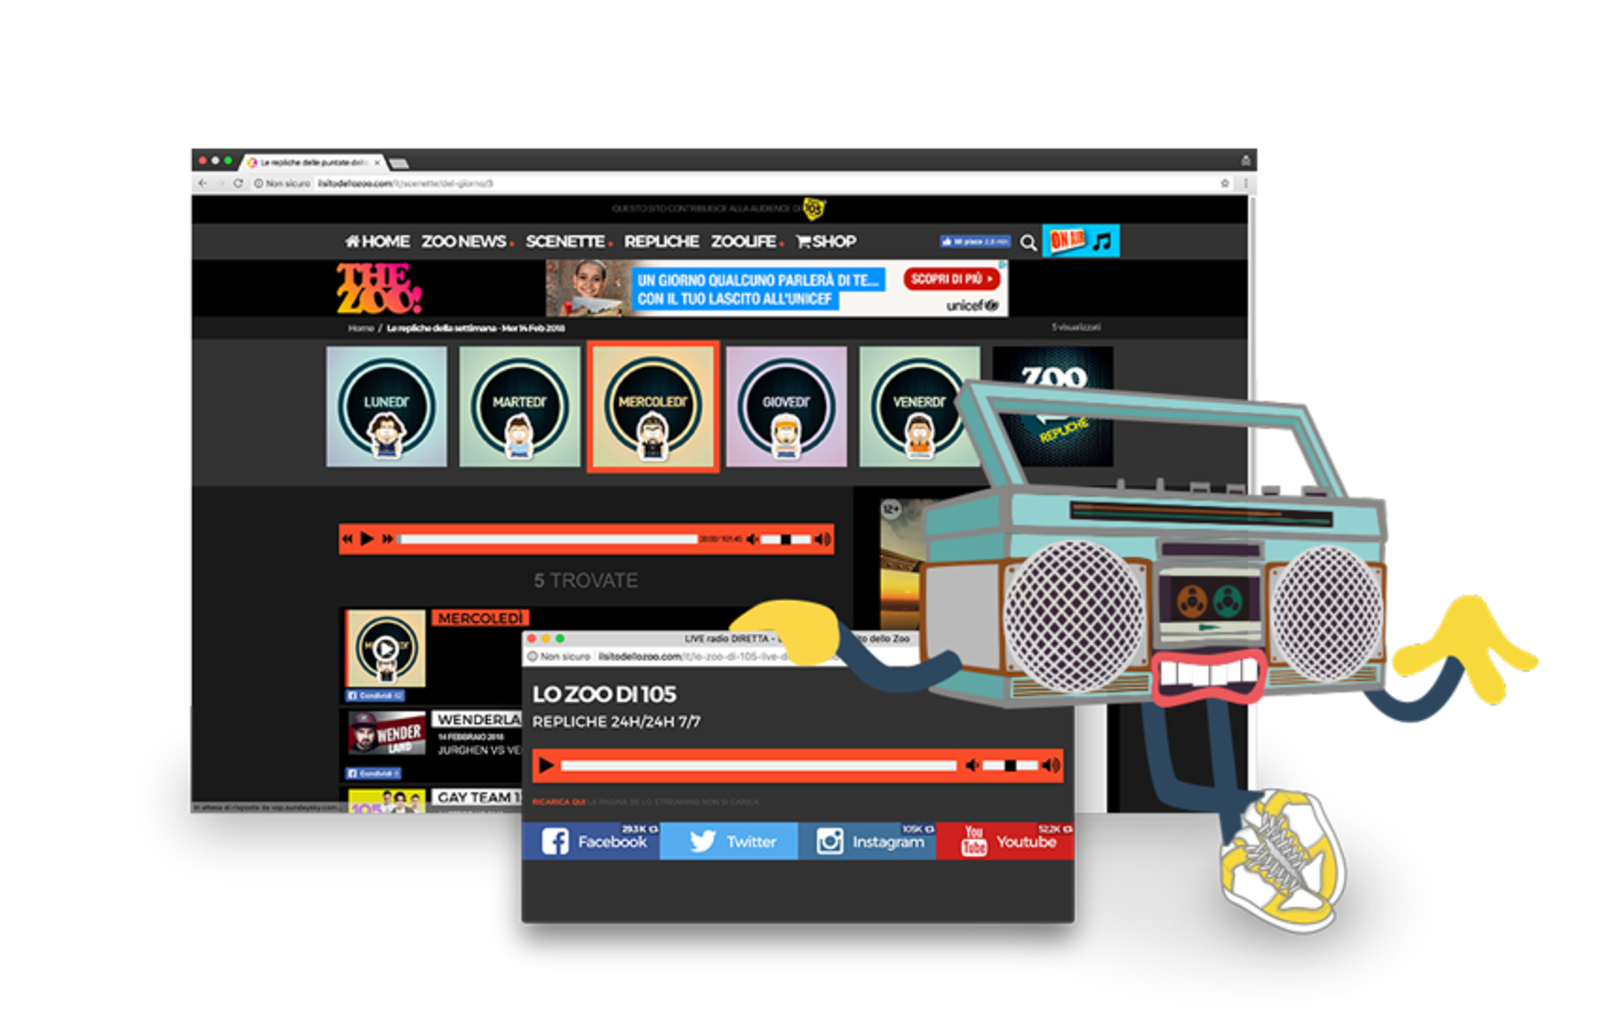 Image consisting of multiple screens of the site including the live screen